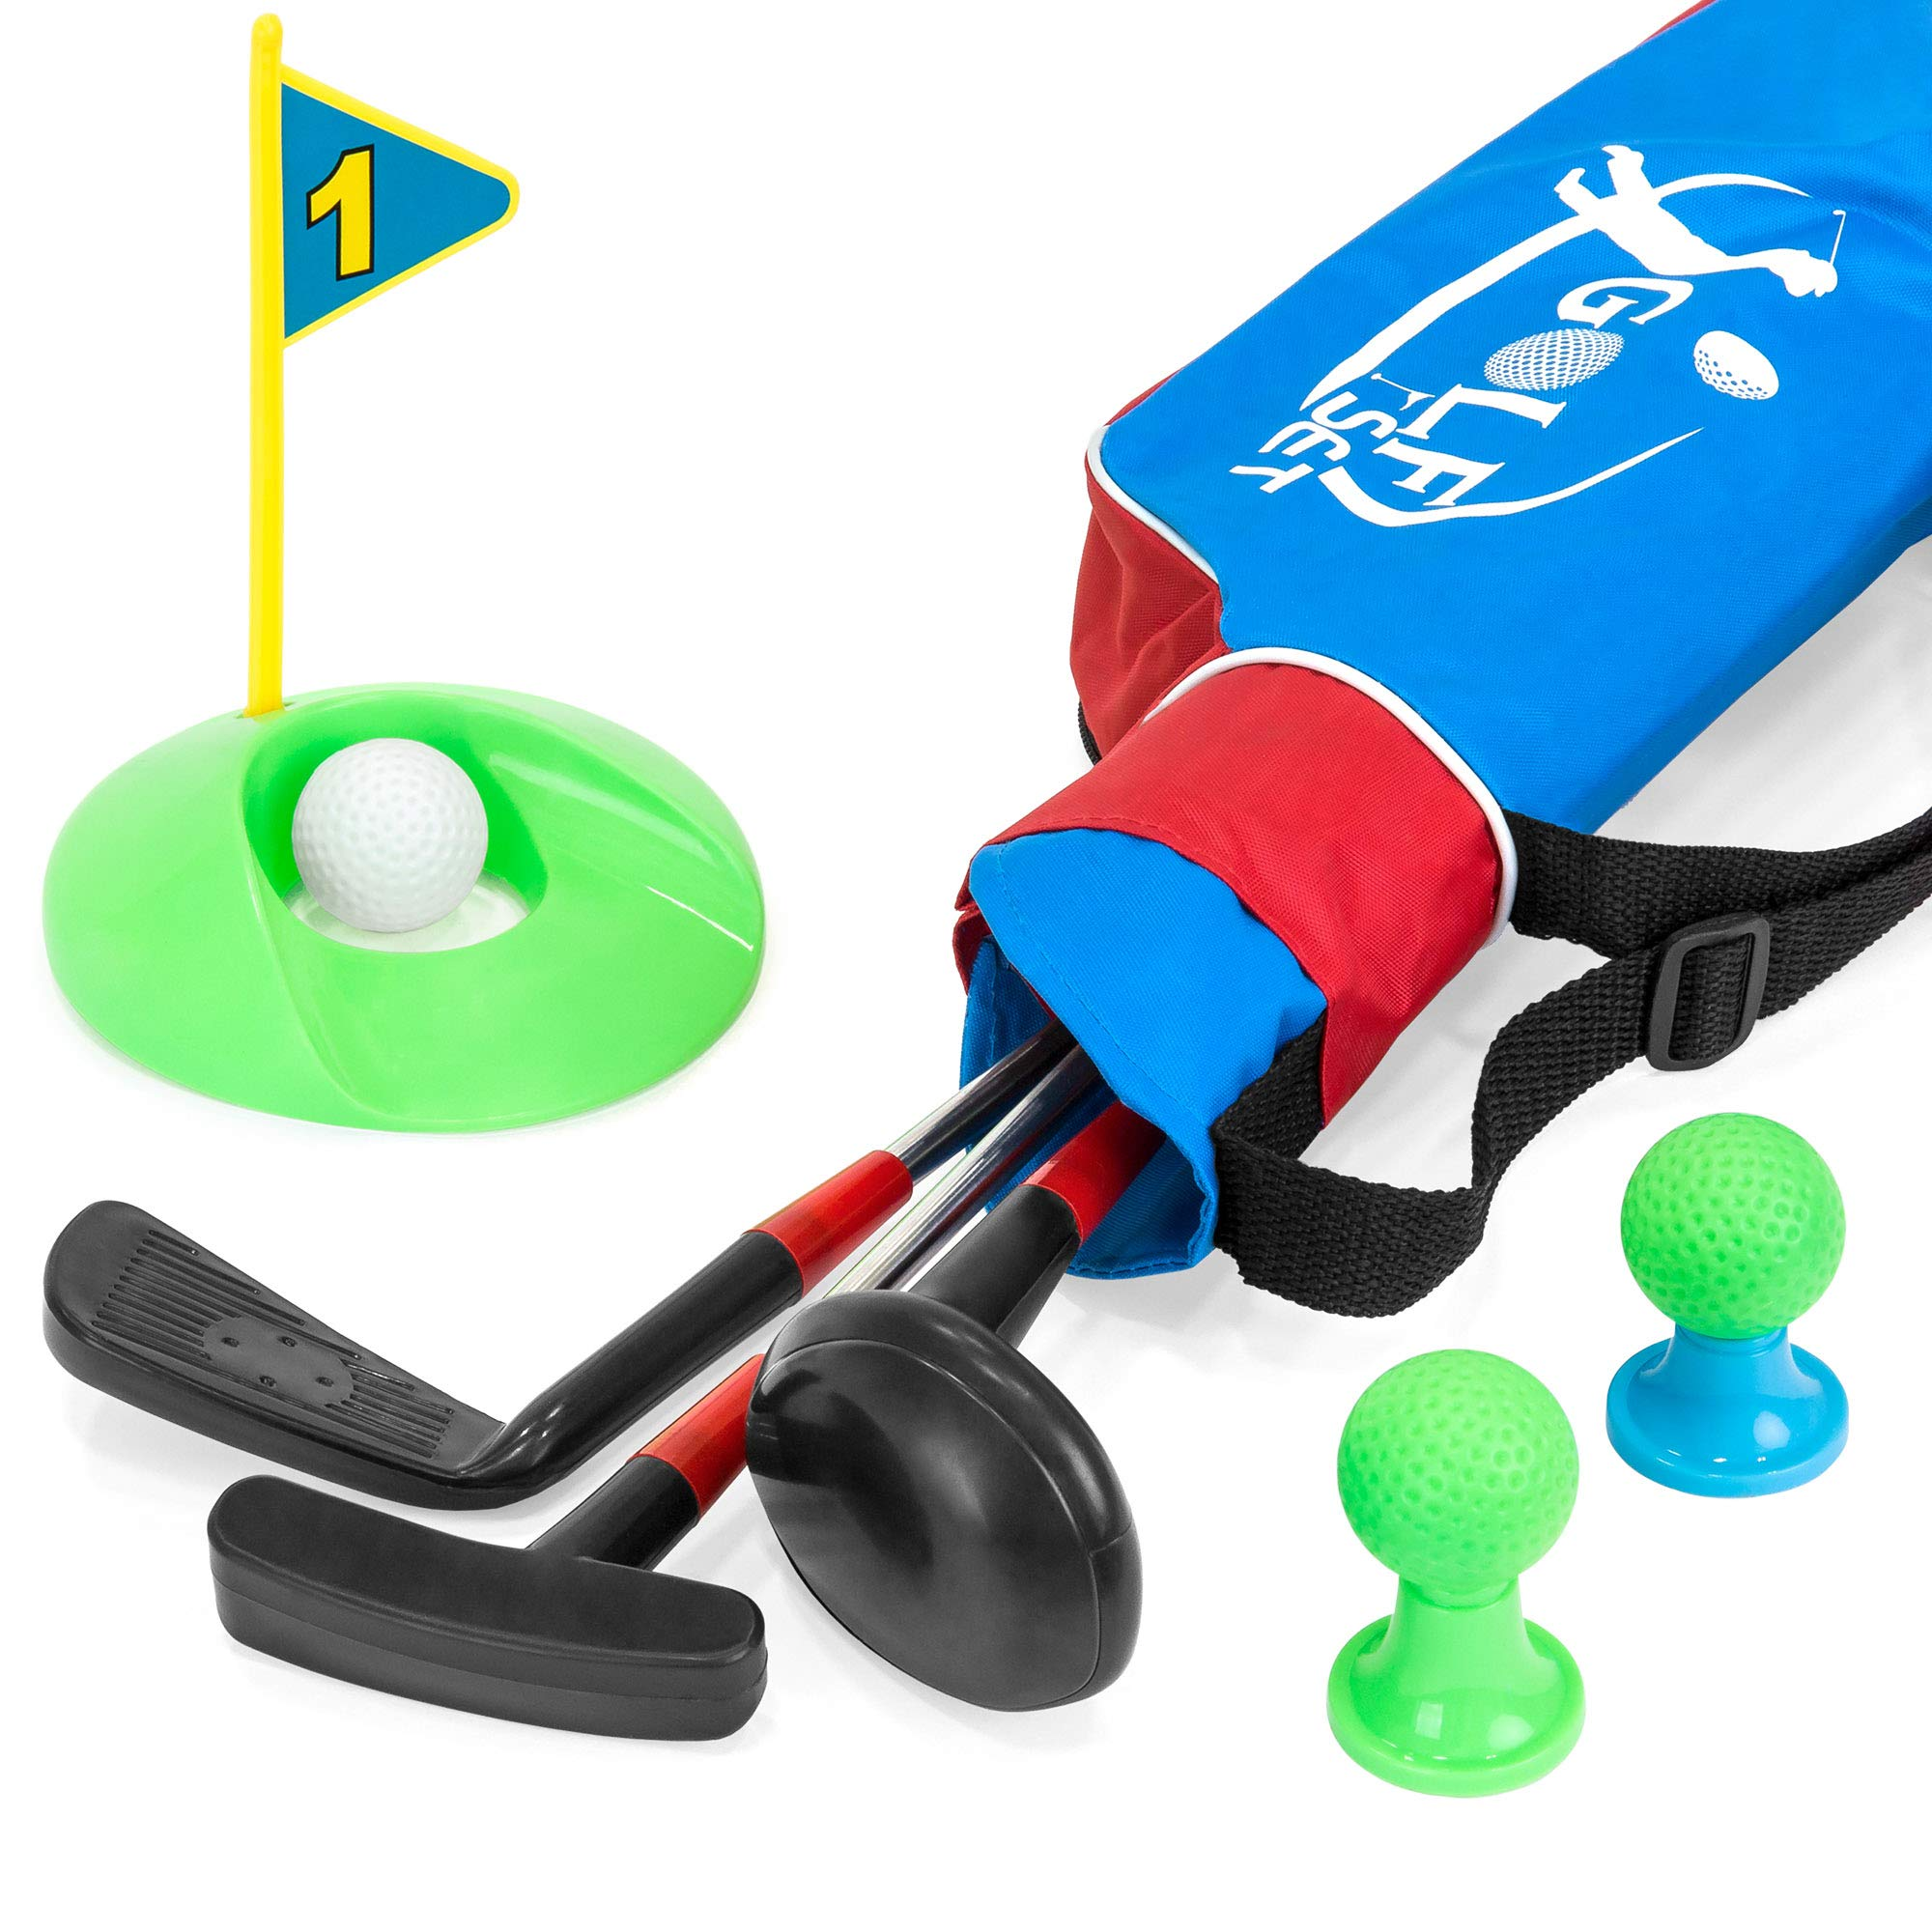 Best Choice Products 13-Piece Kids Golf Set w/ 3 Clubs, 3 Balls, Tees, Hole, and Carrying Bag - Multicolor by Best Choice Products